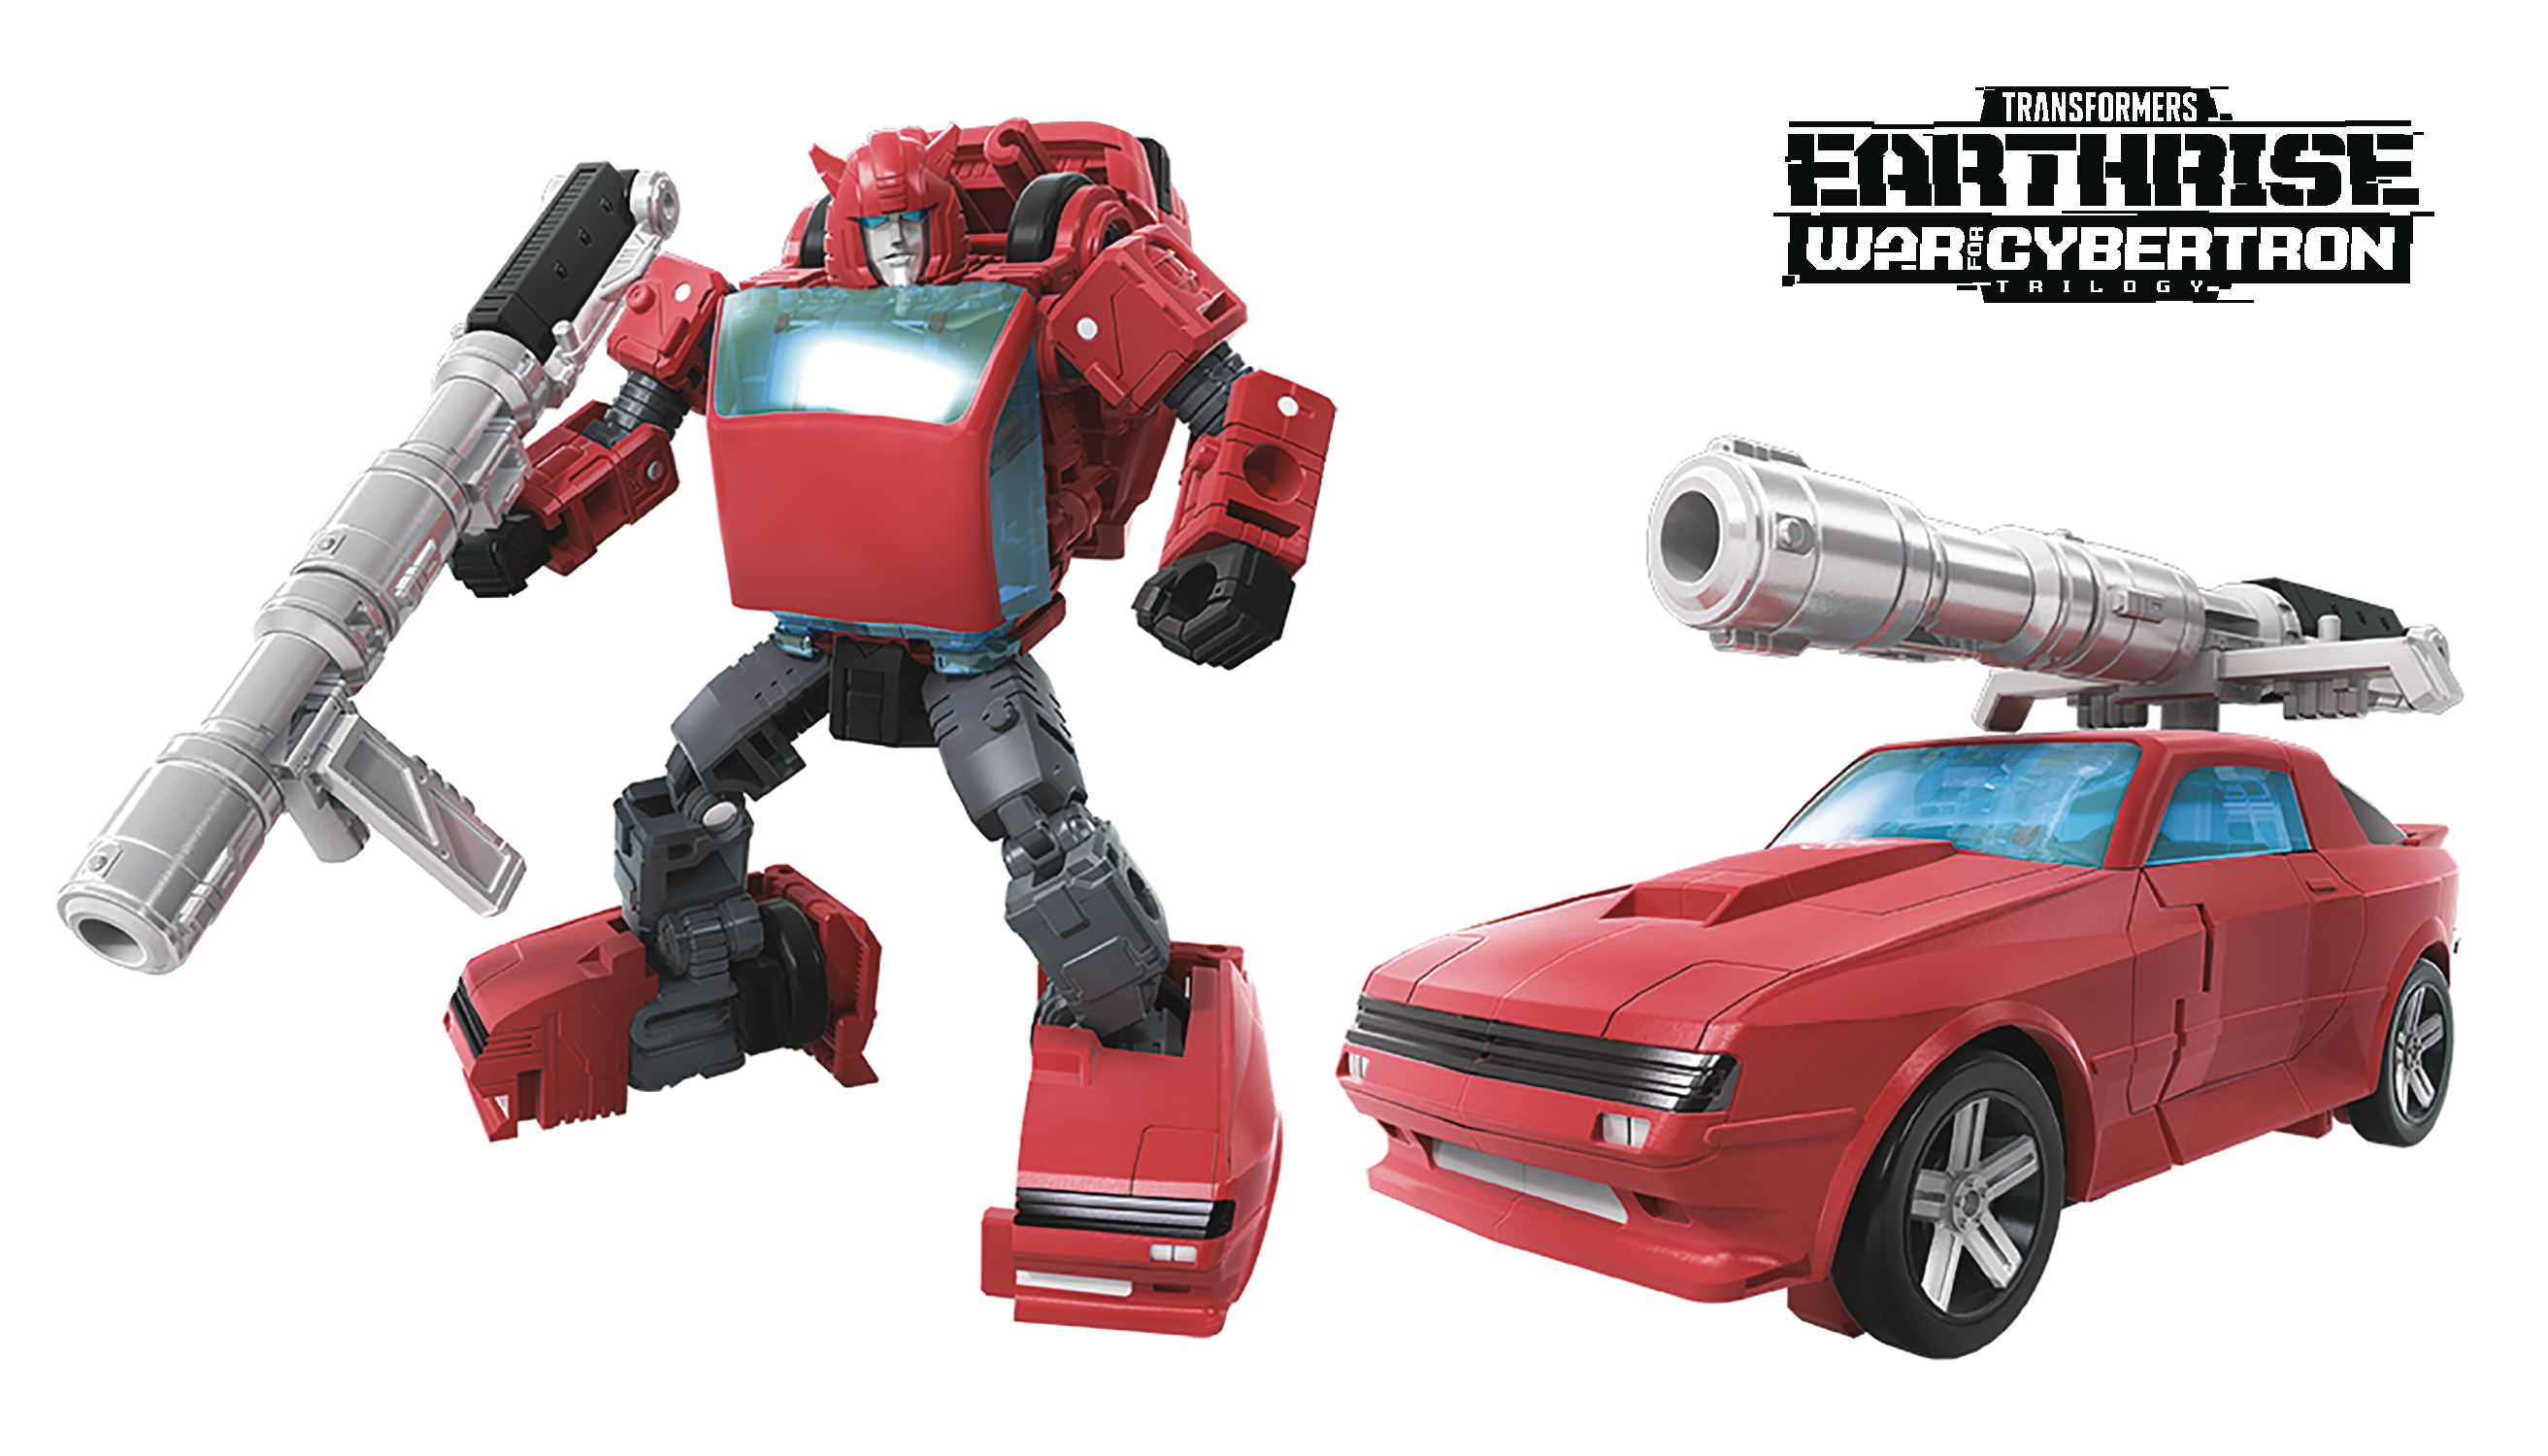 TRANSFORMERS GEN WFCE CLIFFJUMPER DLX AF CS